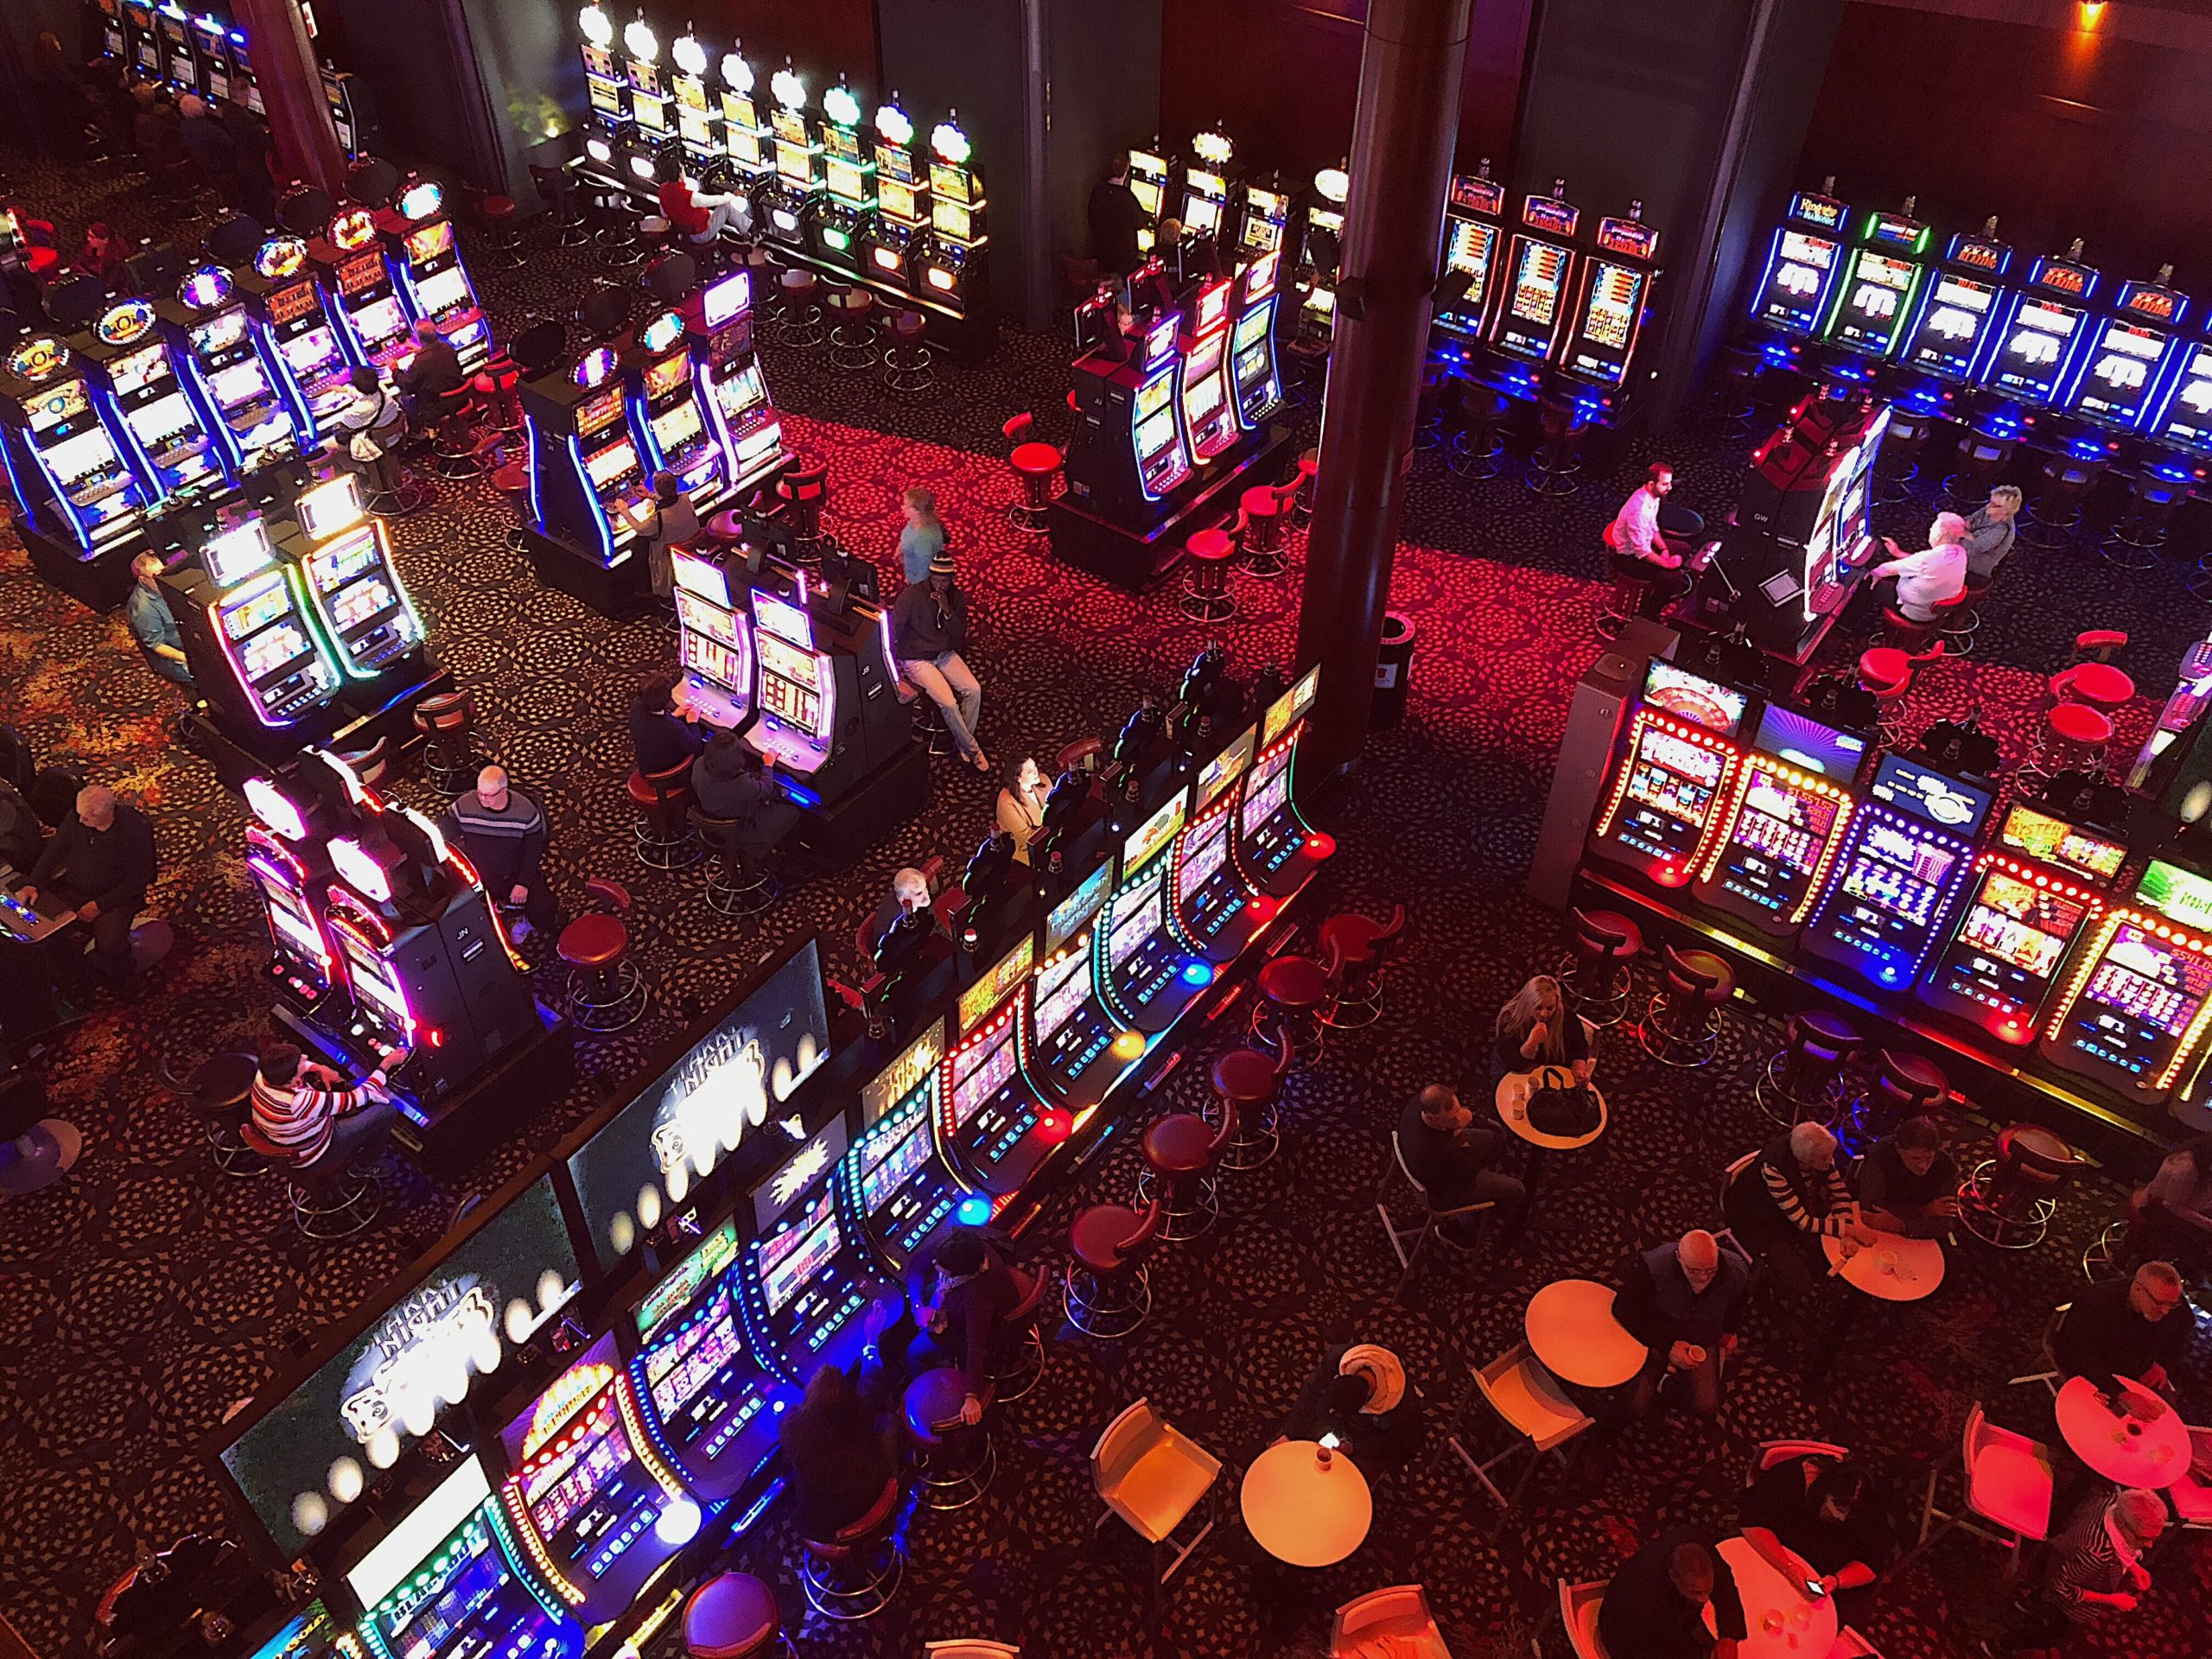 An aerial shot of a casino's slot machines and gambling tables.